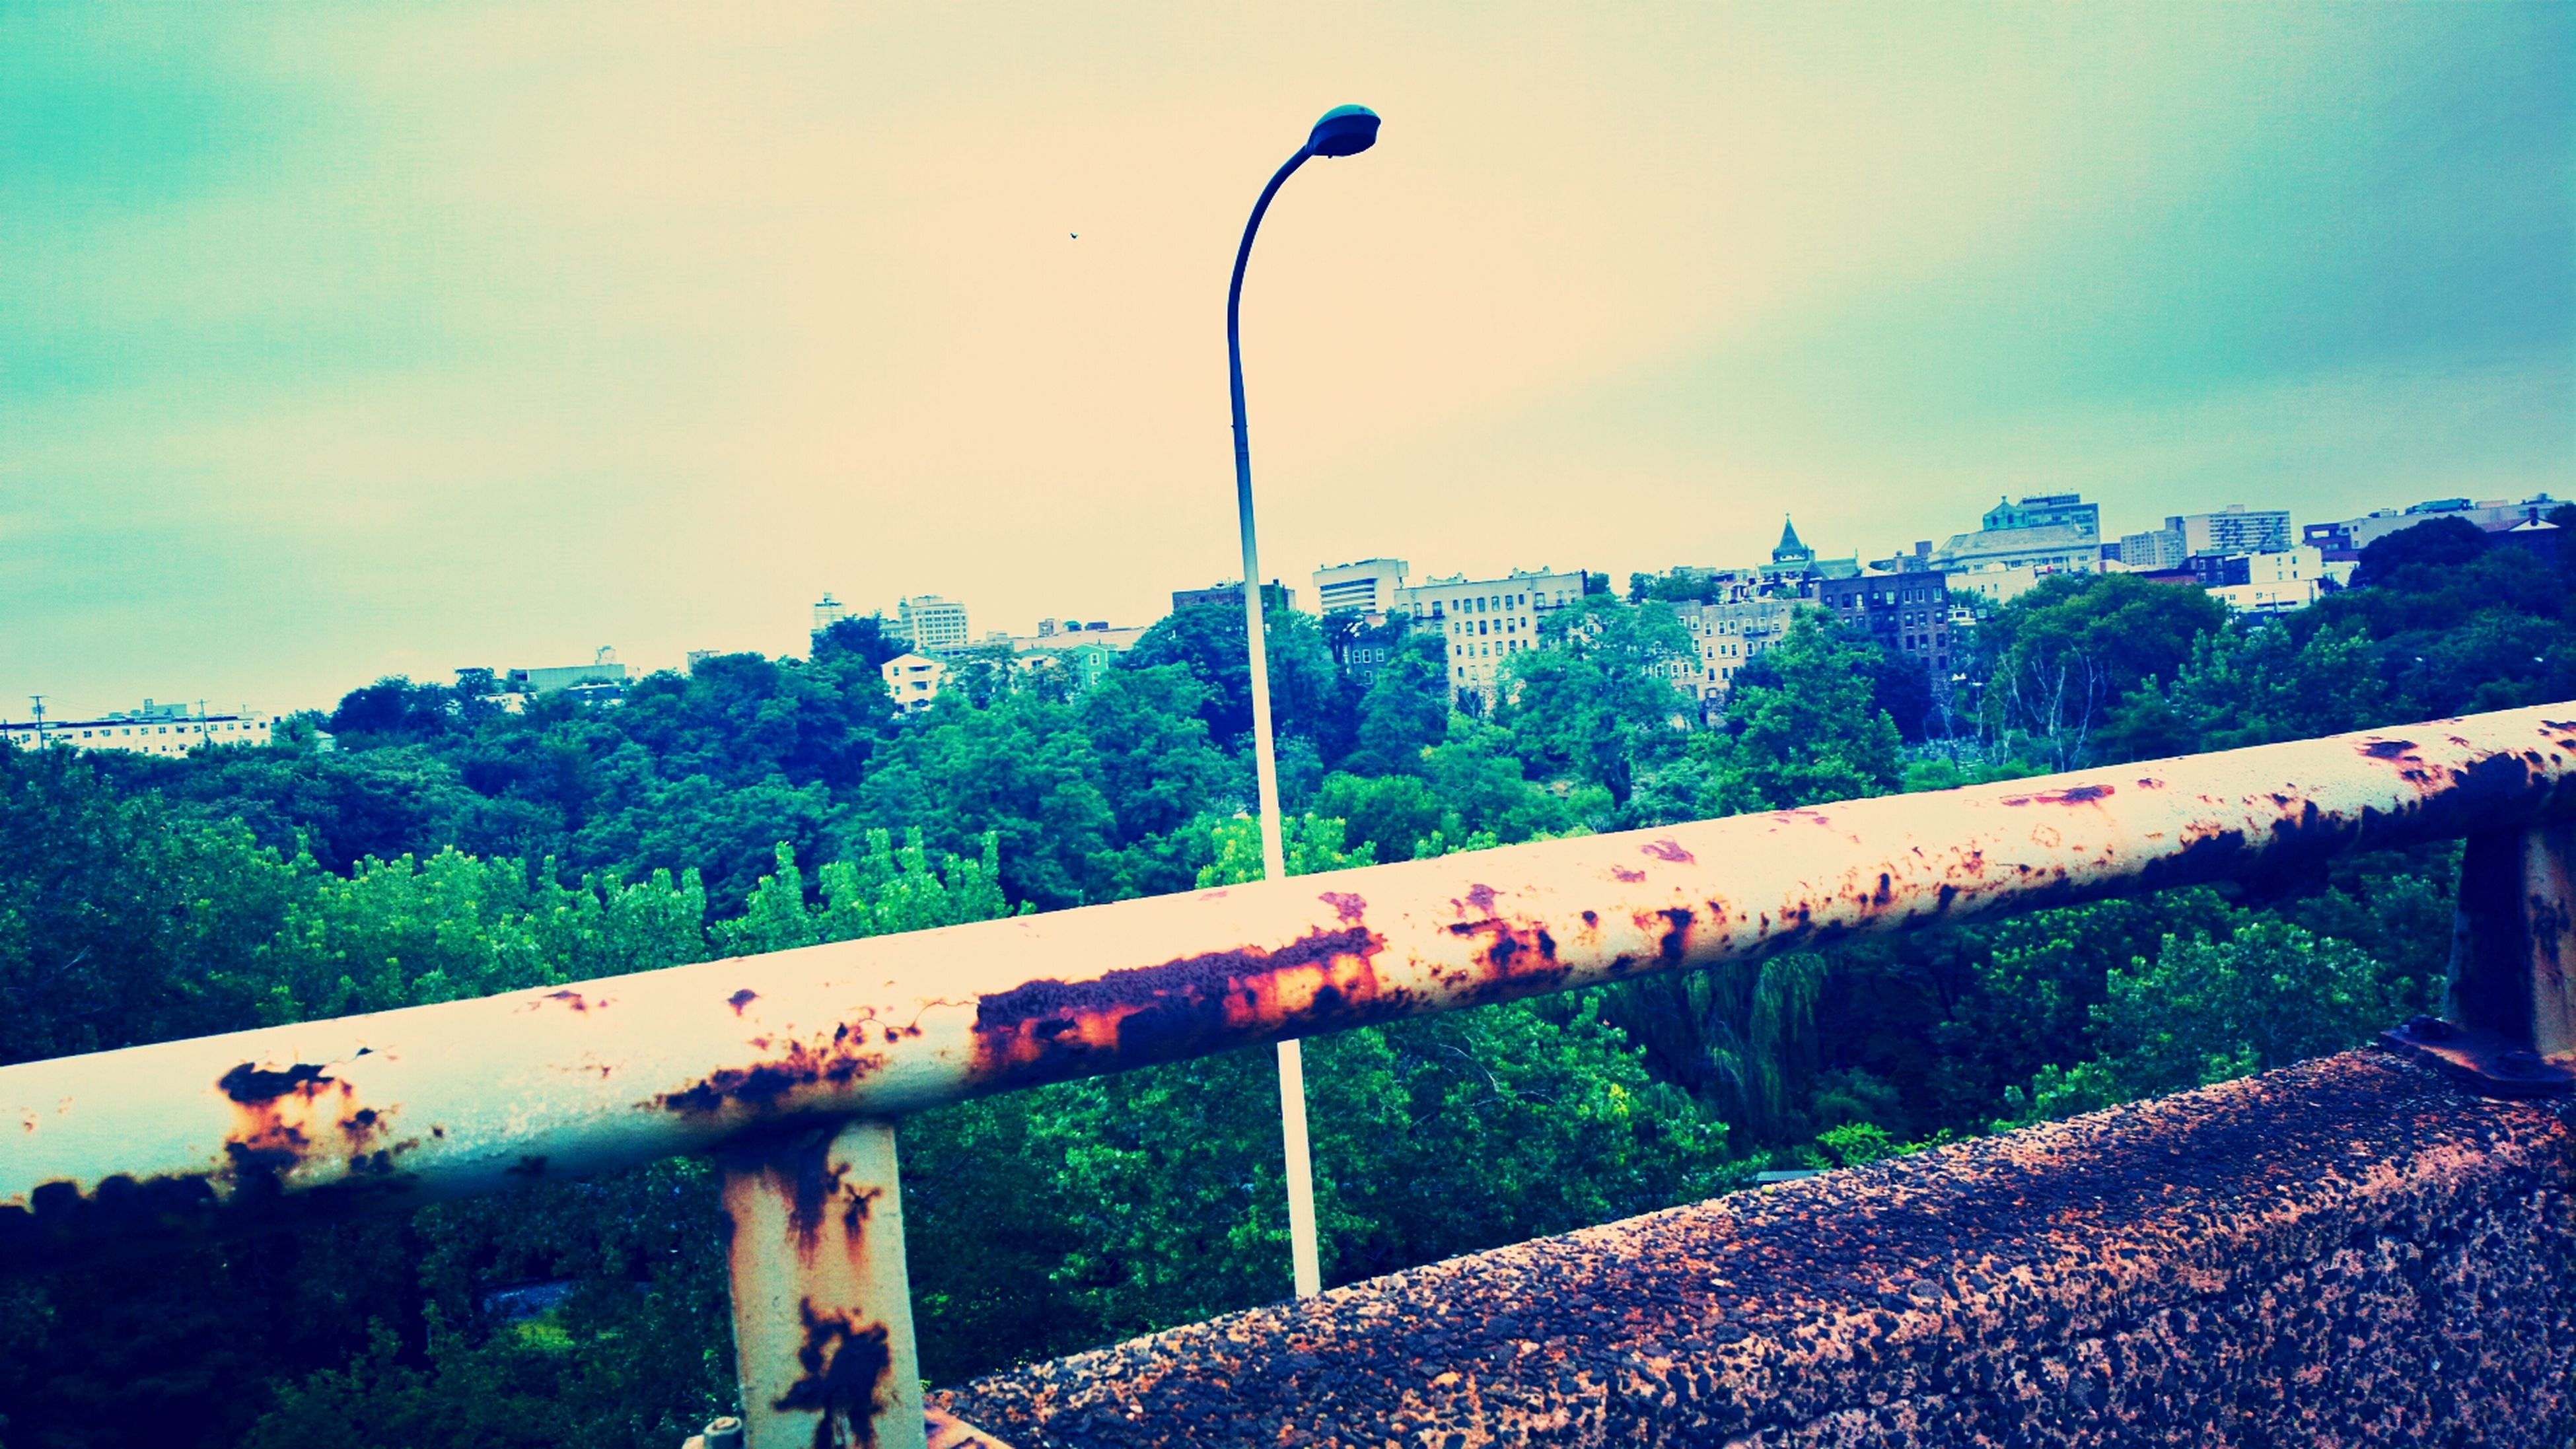 sky, railing, mountain, tree, fence, built structure, street light, architecture, nature, tranquility, tranquil scene, landscape, building exterior, scenics, beauty in nature, cloud - sky, outdoors, lighting equipment, day, growth